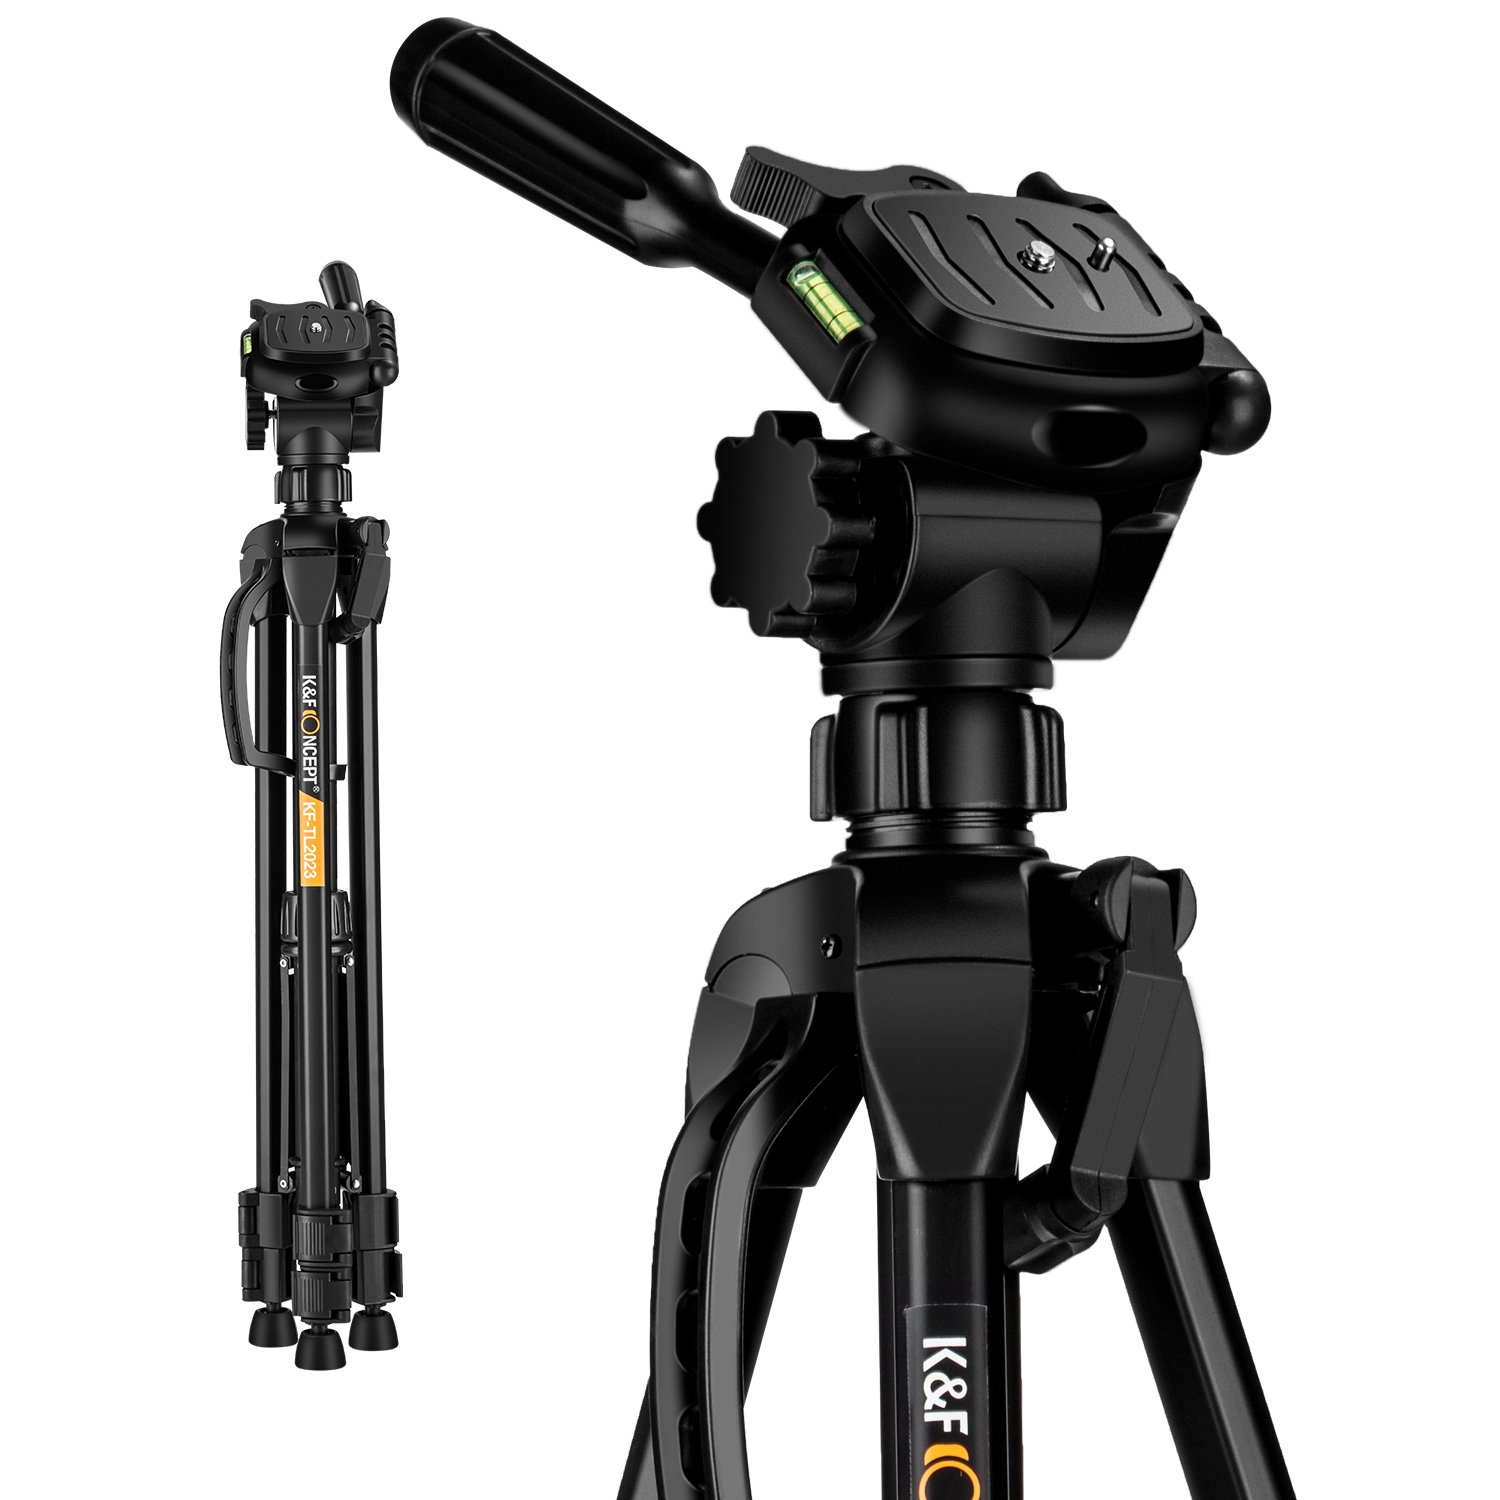 K&F Concept 60 inch Aluminum Travel Tripod with Lightweight Carry Bag for Digital SLR DSLR Canon Nikon Sony Camera TL2023